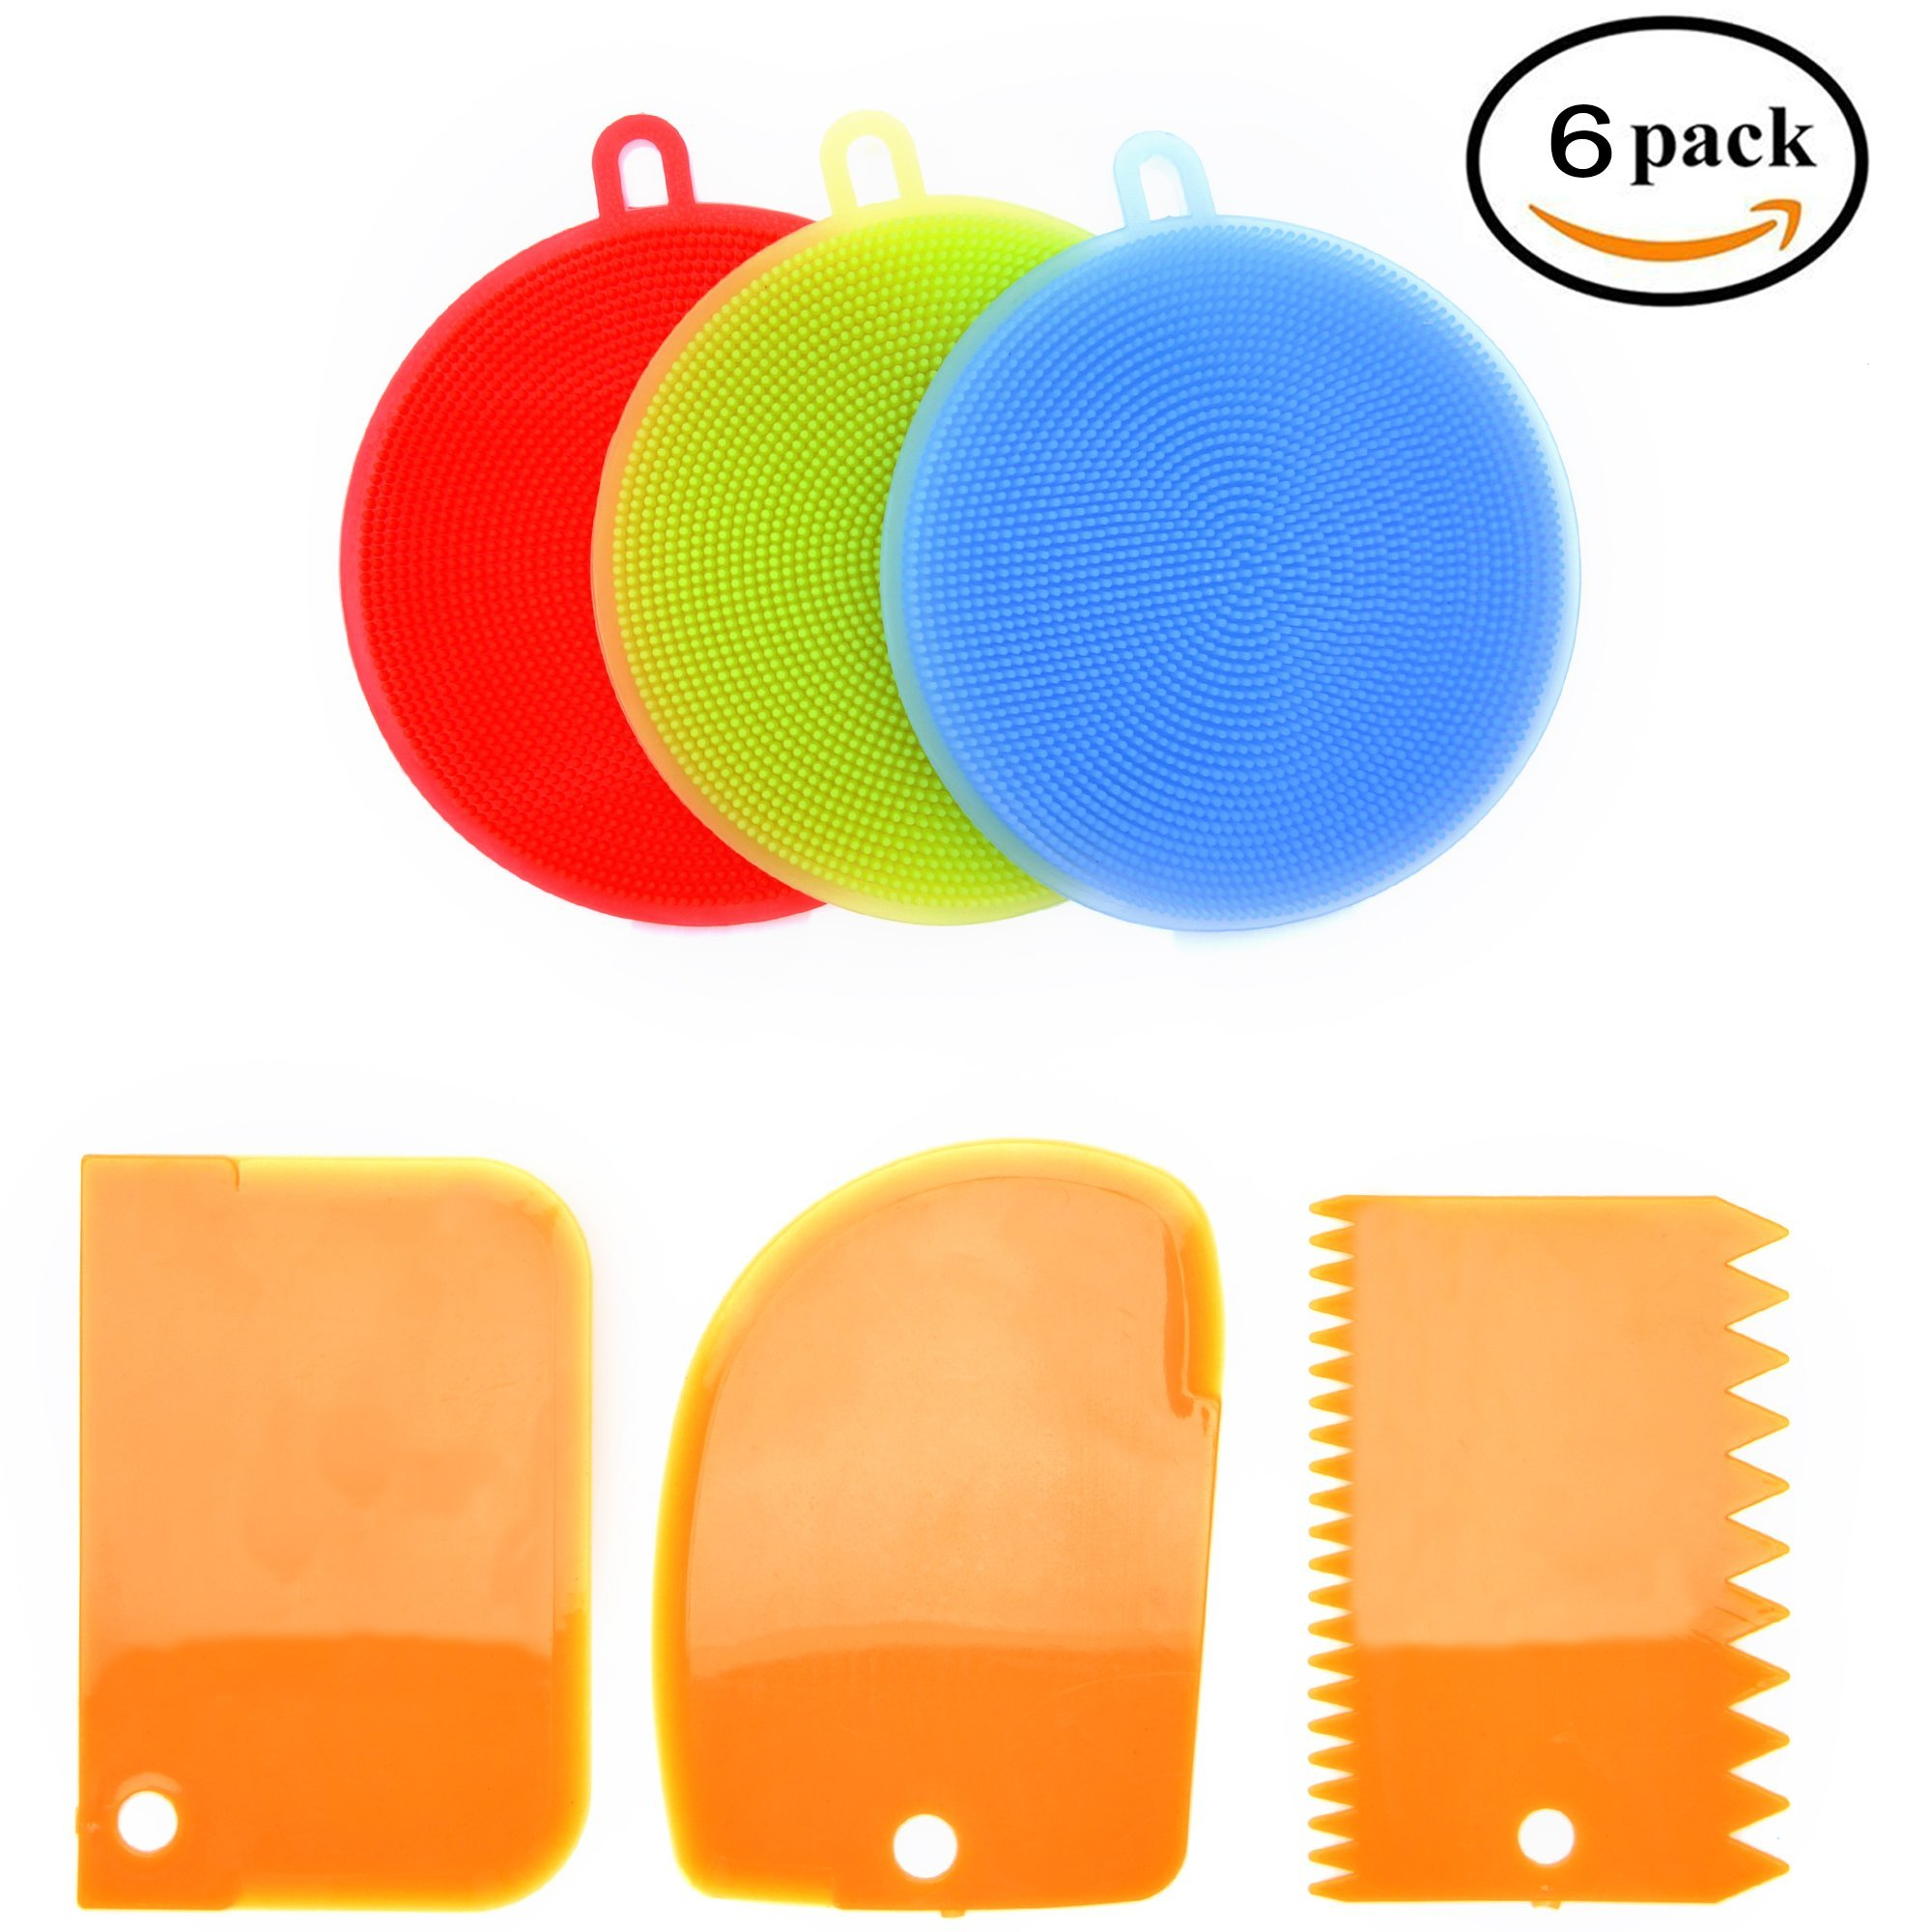 Food Safe Silicone Kitchen Sponge and Scrubber | Perfect Silicone Sponge For Dishes, Cleaning, Washing Fruits | Dishwasher Safe and Insanely Dense/Durable | 3 Included Heavy Duty Scrapers | (6 Pack)